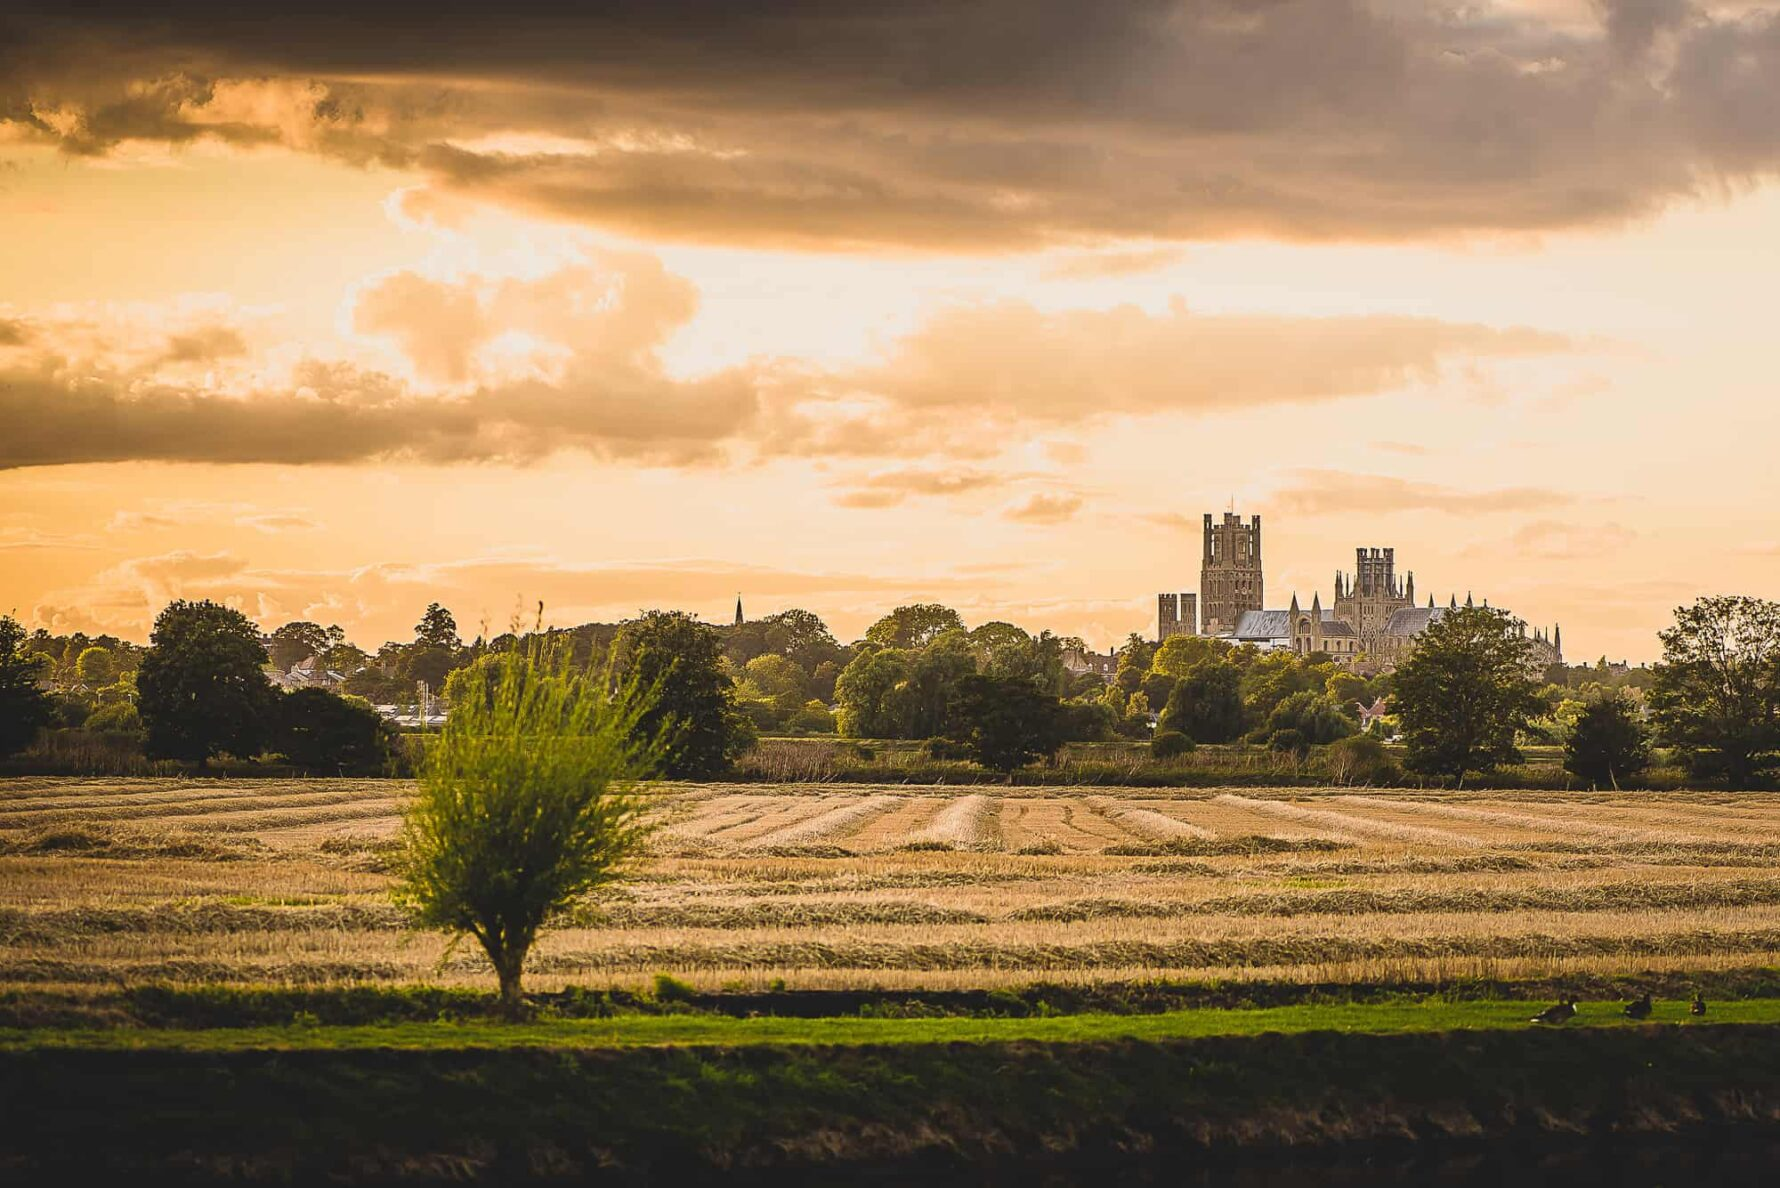 view to Ely Cathedral at The Old Hall wedding venue near Ely